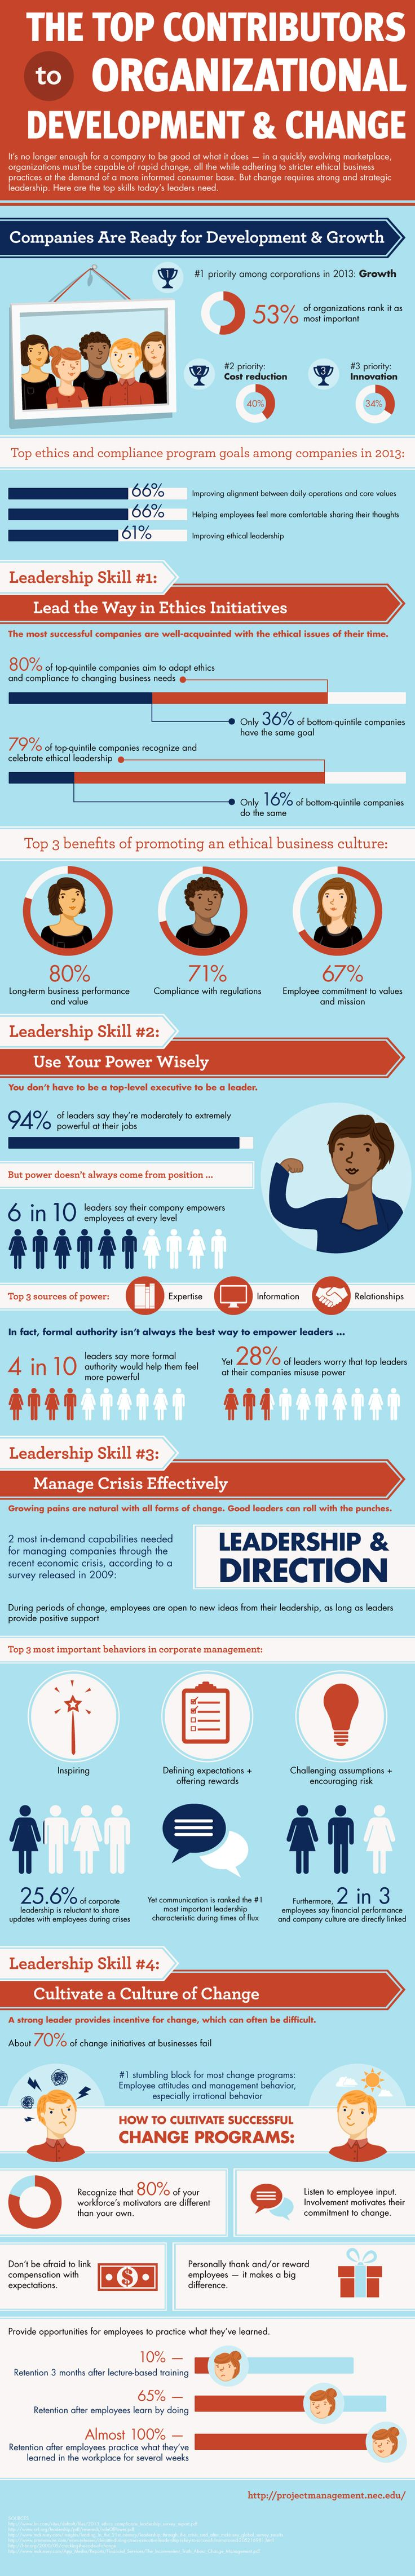 How to know if you are a Good #Startup or Brand #Leader? #Infographic / @kate_h_taylor @Entrepreneur / Along with ethical #leadership, companies are in pursuit of leaders who can use their power wisely, manage crises and cultivate a culture of change. The infographic below, compiled by NEC's Online Master of Science in Project #Management, offers key data and #statistics on leadership in an evolving marketplace.